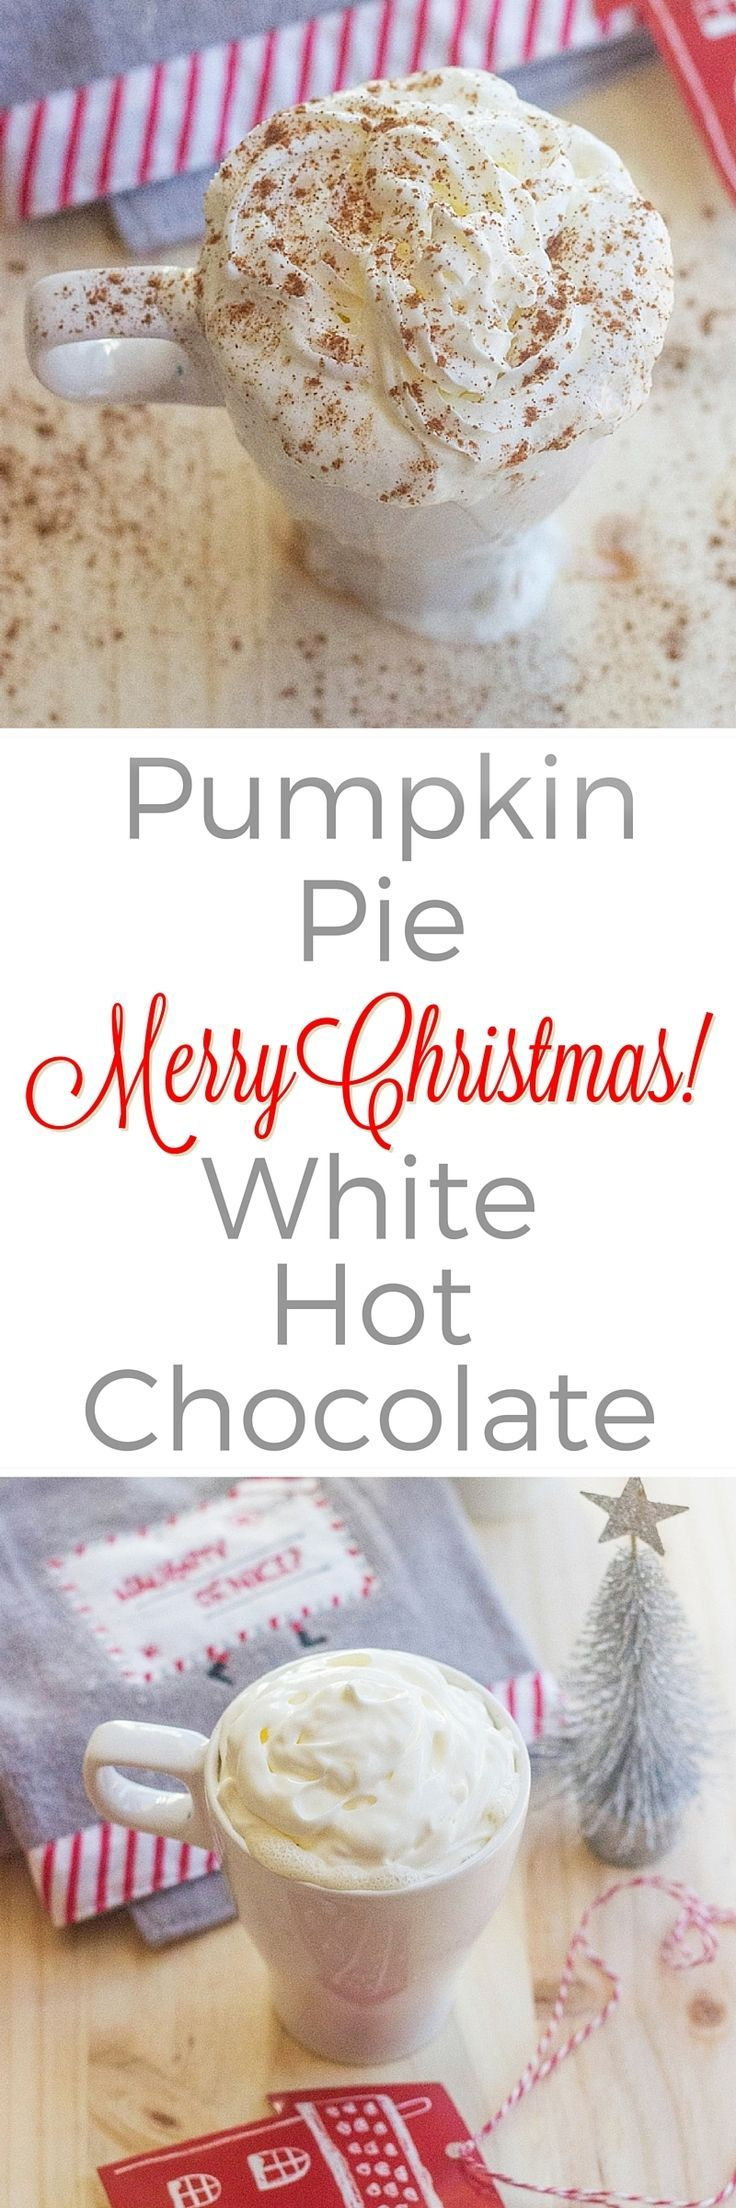 Pumpkin Pie White Hot Chocolate | Recipe | Pumpkins, Christmas tag and ...